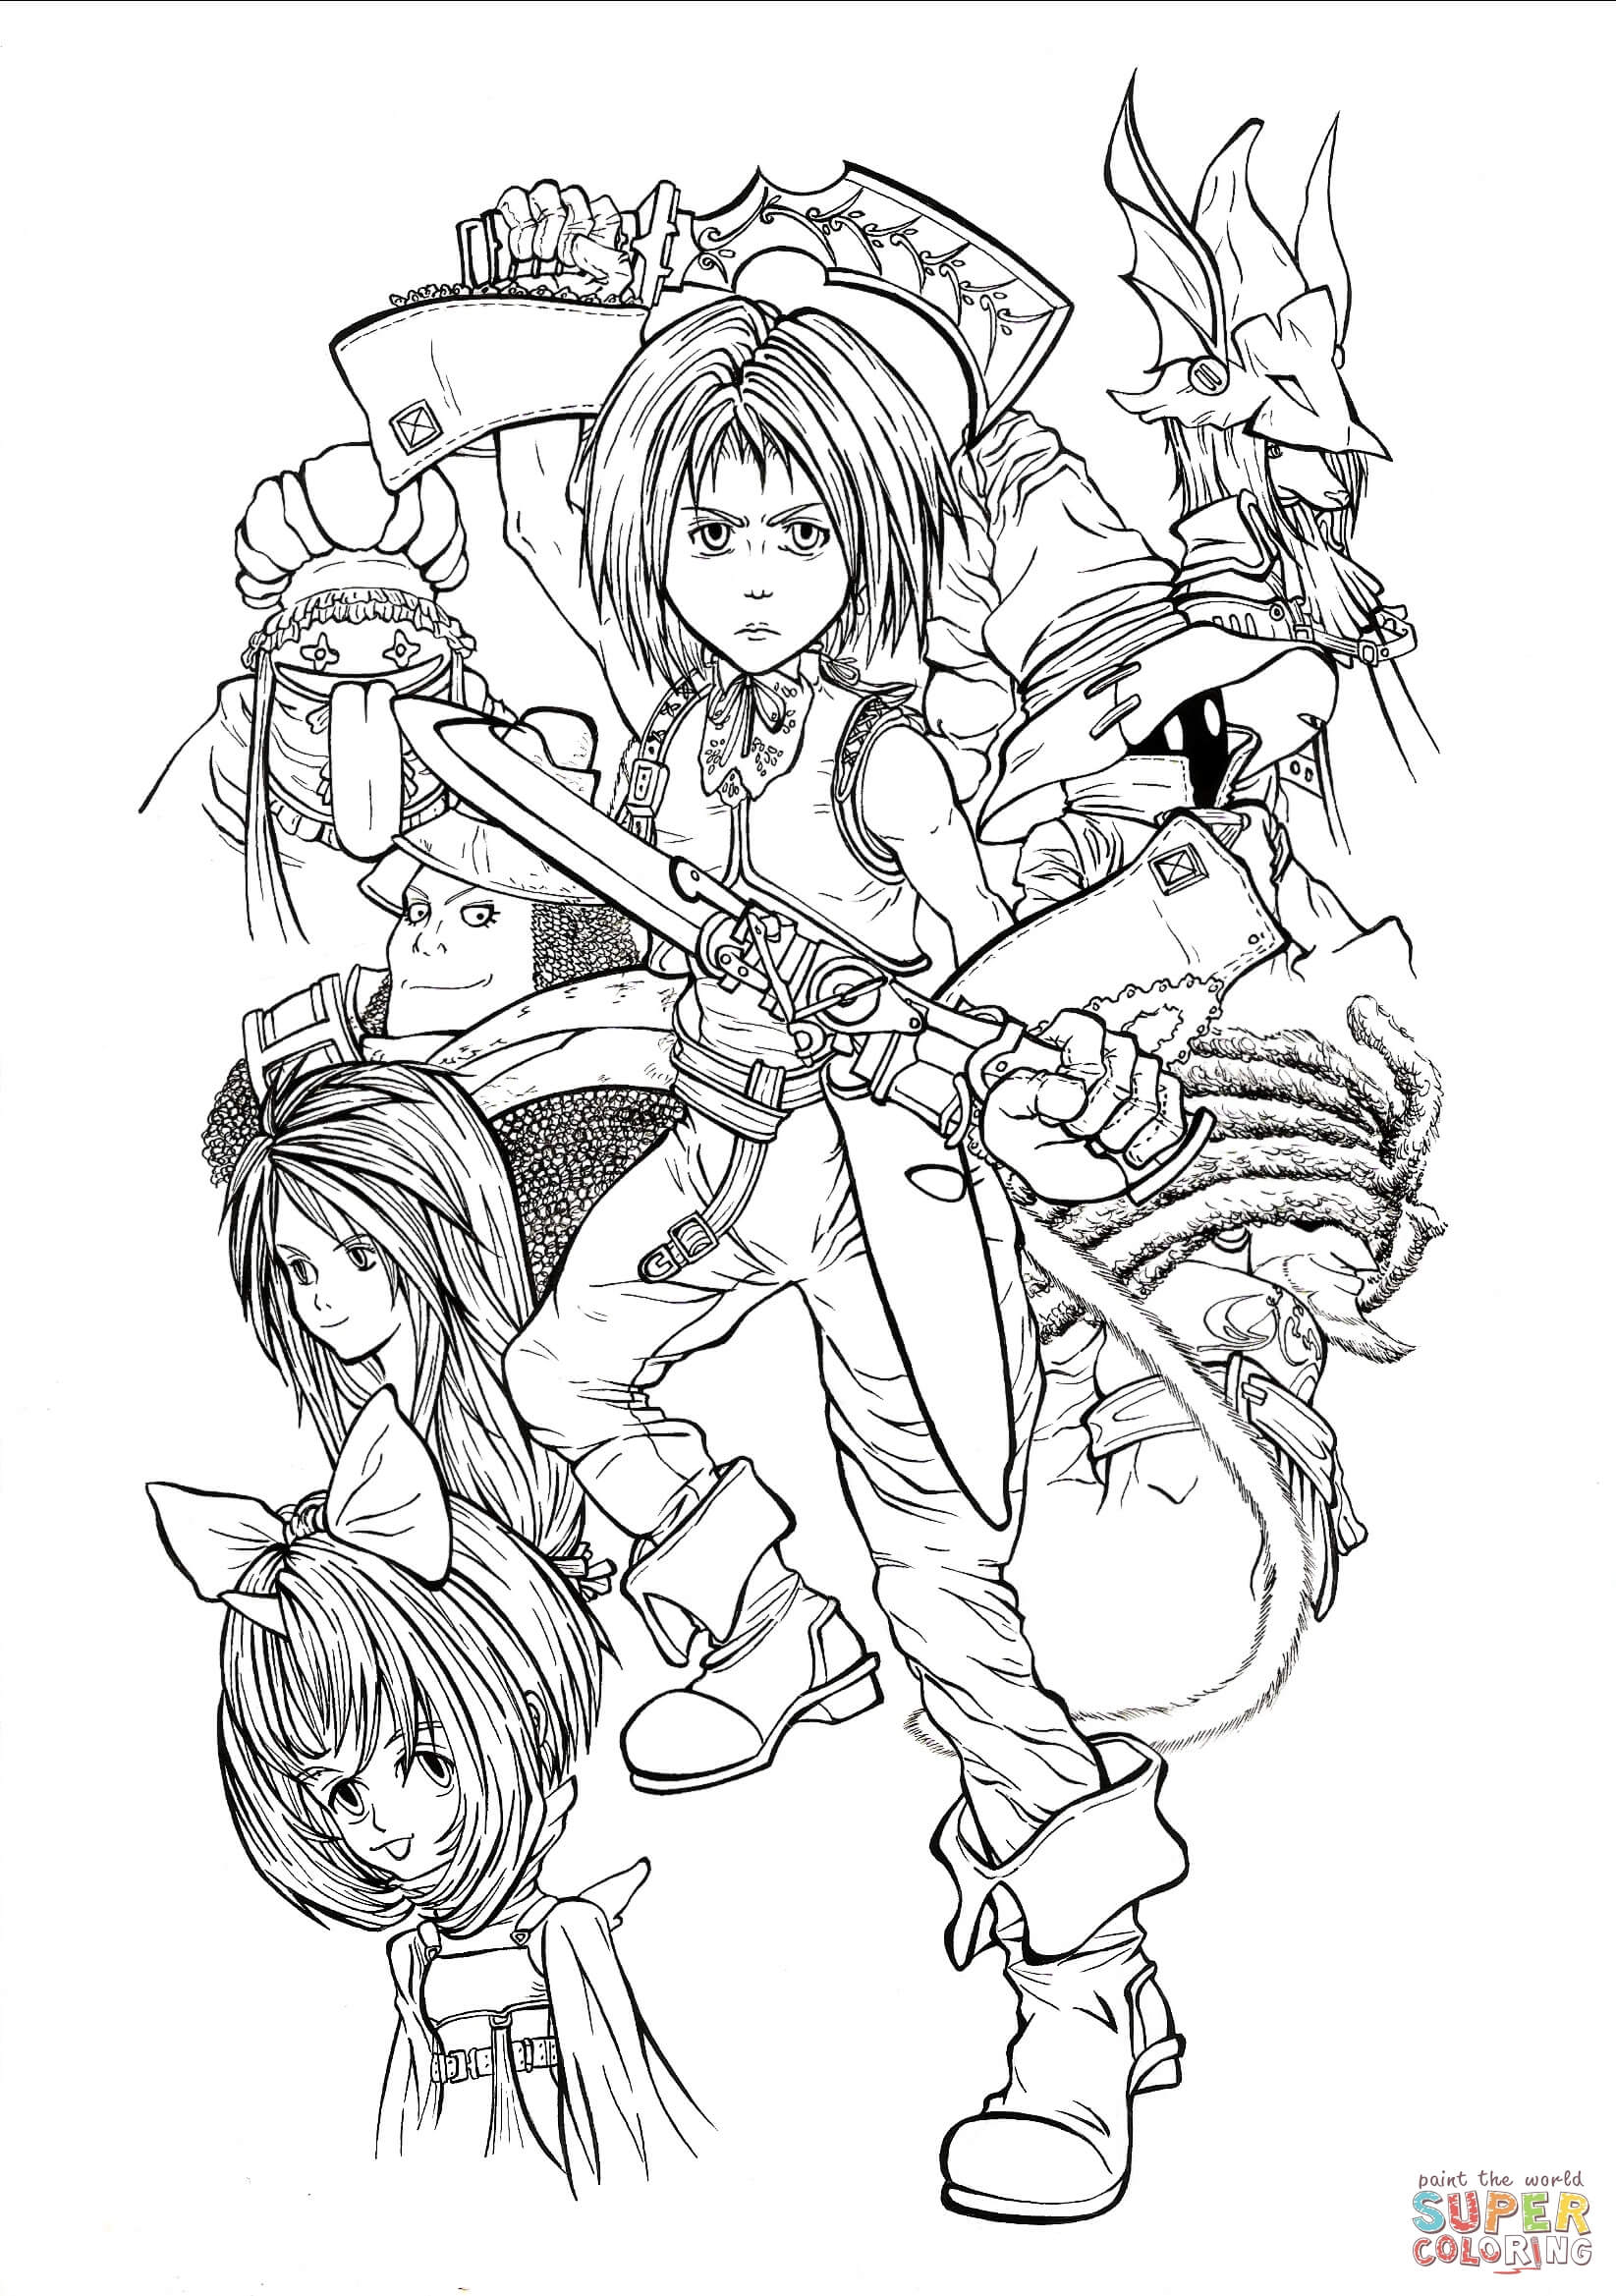 Fantasy Coloring Pages Full Time Playable Characters Of Final Fantasy Ix Coloring Page